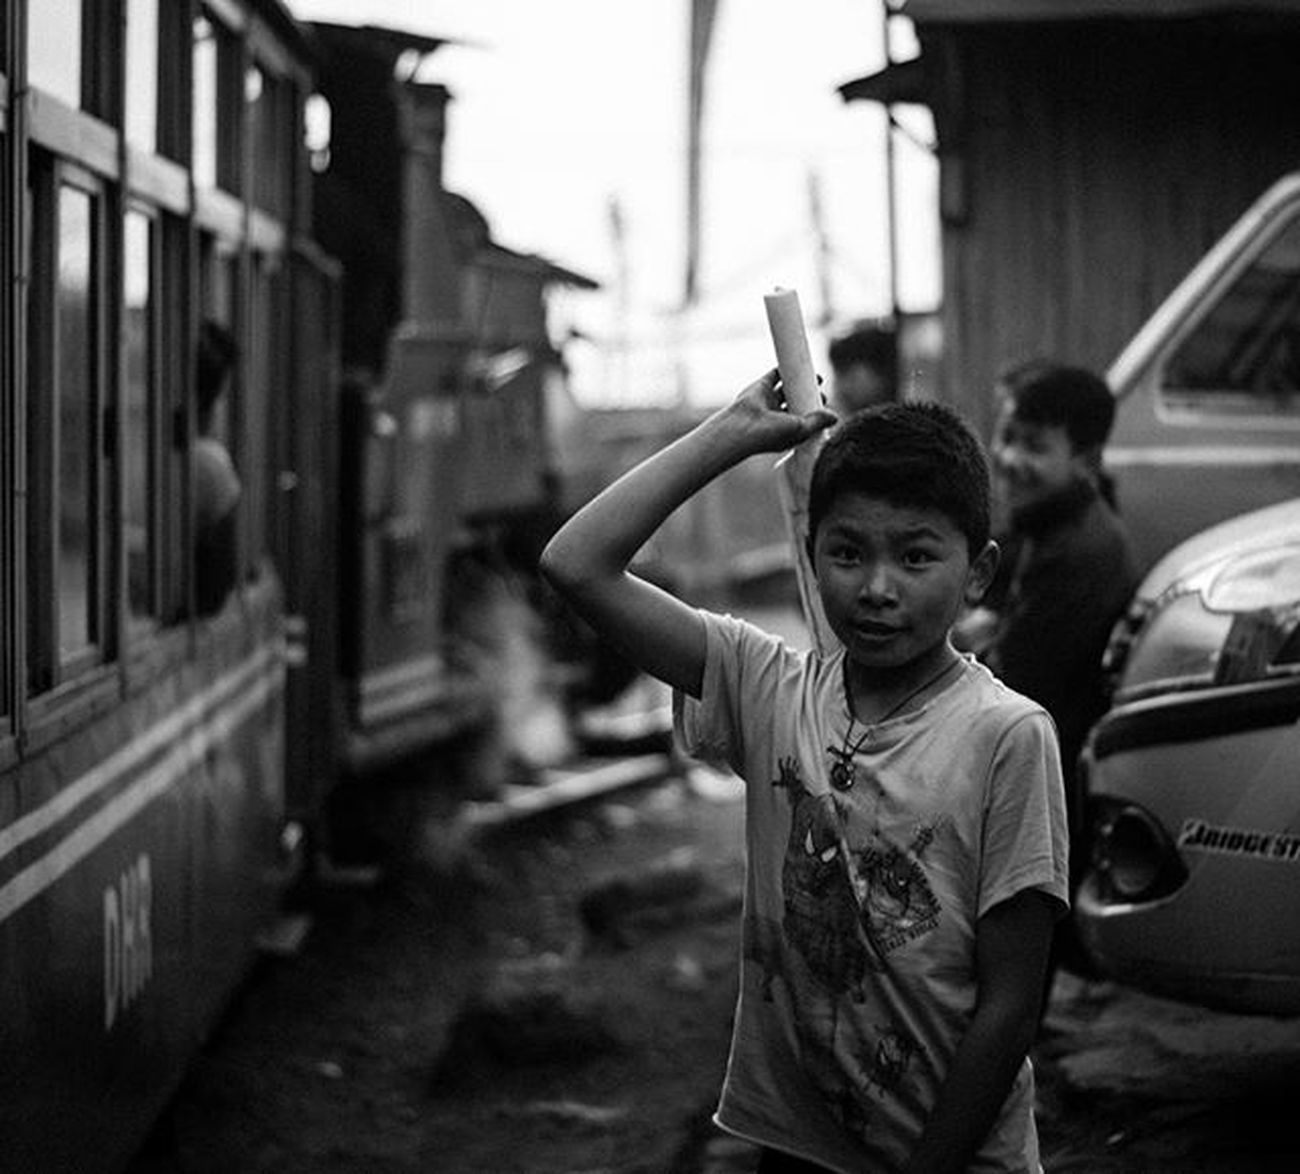 A local kid playfully waves at tourists in passing Toy Train . . . . Streetportrait Portrait People Kids Jj_streetphotography Moodygrams Highcontrast Foto_blackwhite Amateurs_bnw Bnw_planet Bnw_rose Bnw Travel Travelingram Natgeotravel Lonelyplanetindia Ig_india Ig_bengals OnlyinIndia IndiaLove Natgeo Betterphotography Onlyinbengal Indiaphotoproject Streetphotographyindia _oye _soi indiastreet indiaig desi_diaries